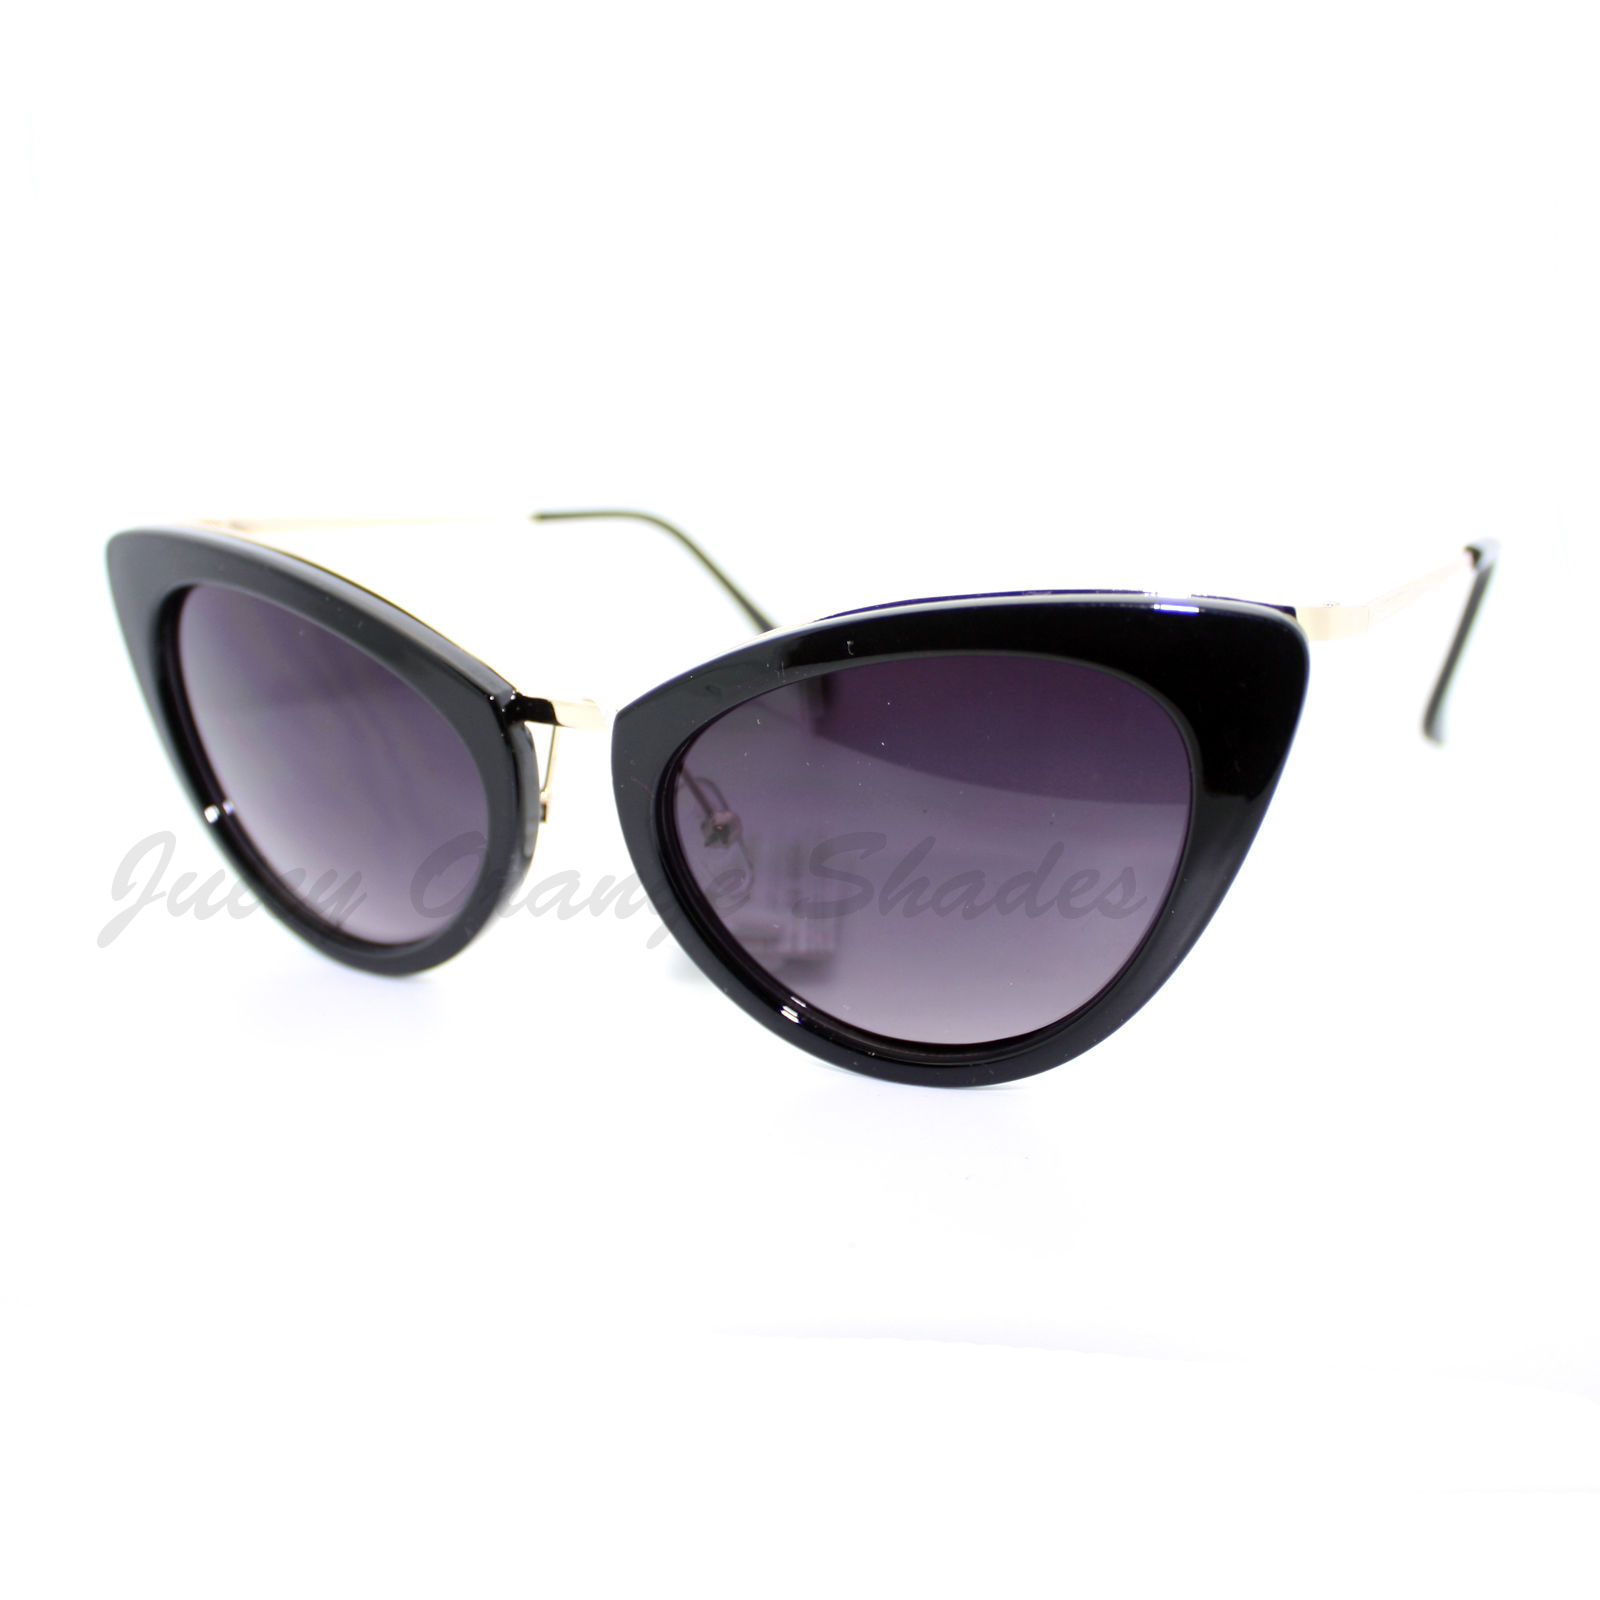 Womens Cateye Sunglasses Designer High Fashion Chic Retro Shades